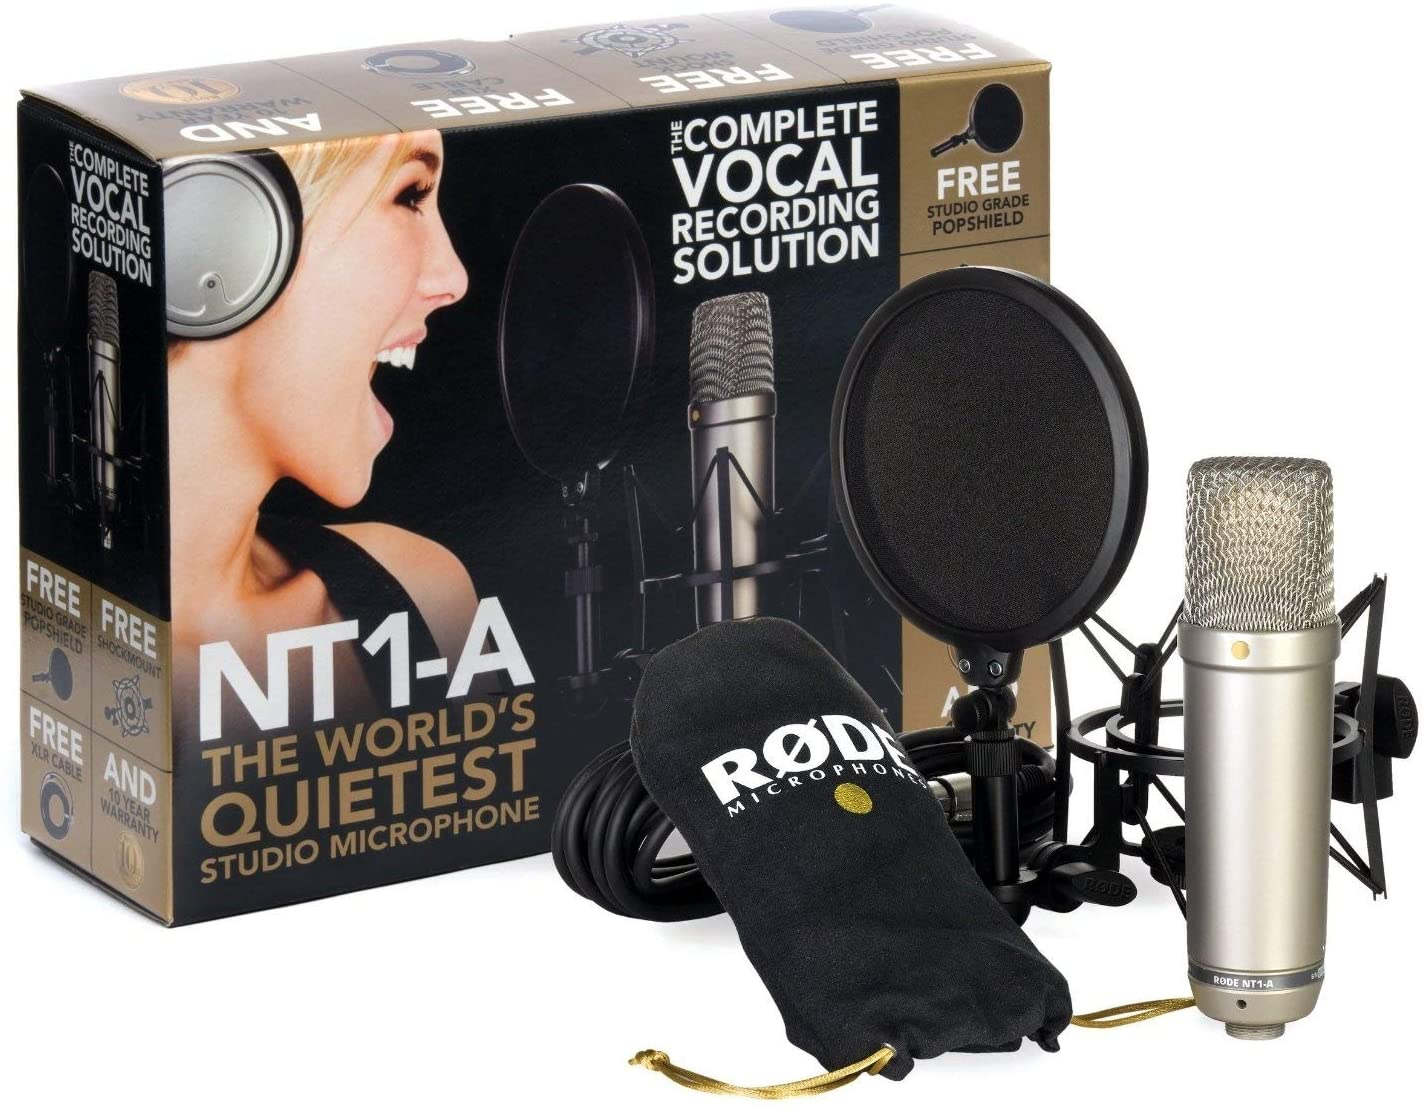 rode nt1 a bundle - 9 Best Cheap Mic for Gaming 2021